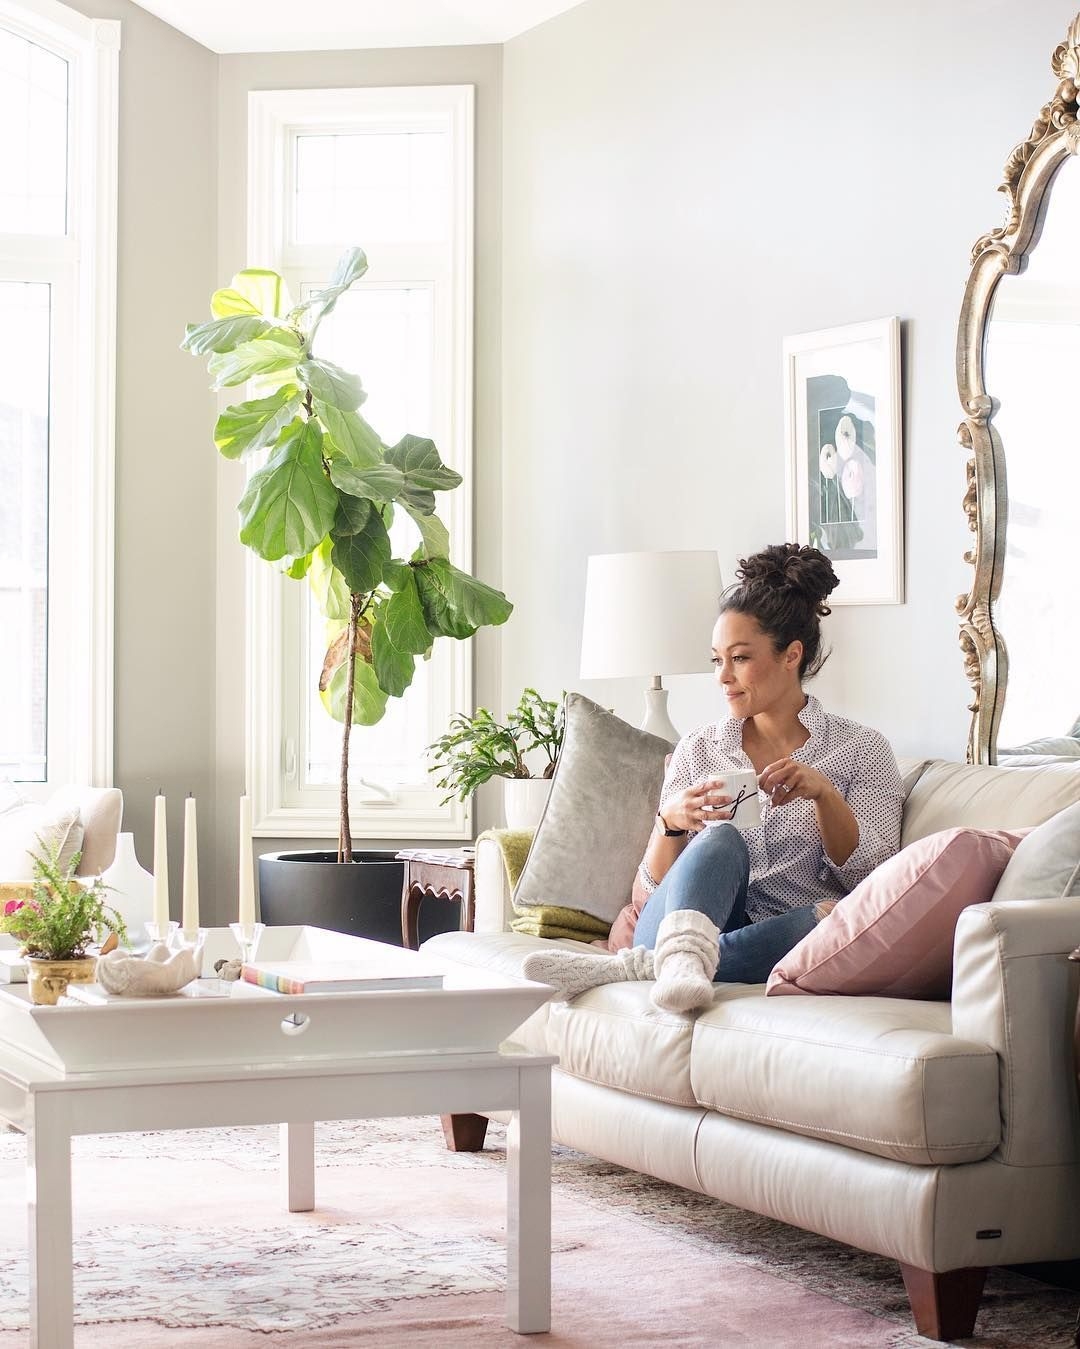 Cozy coffee moment in the living room | Living/Great Room ...